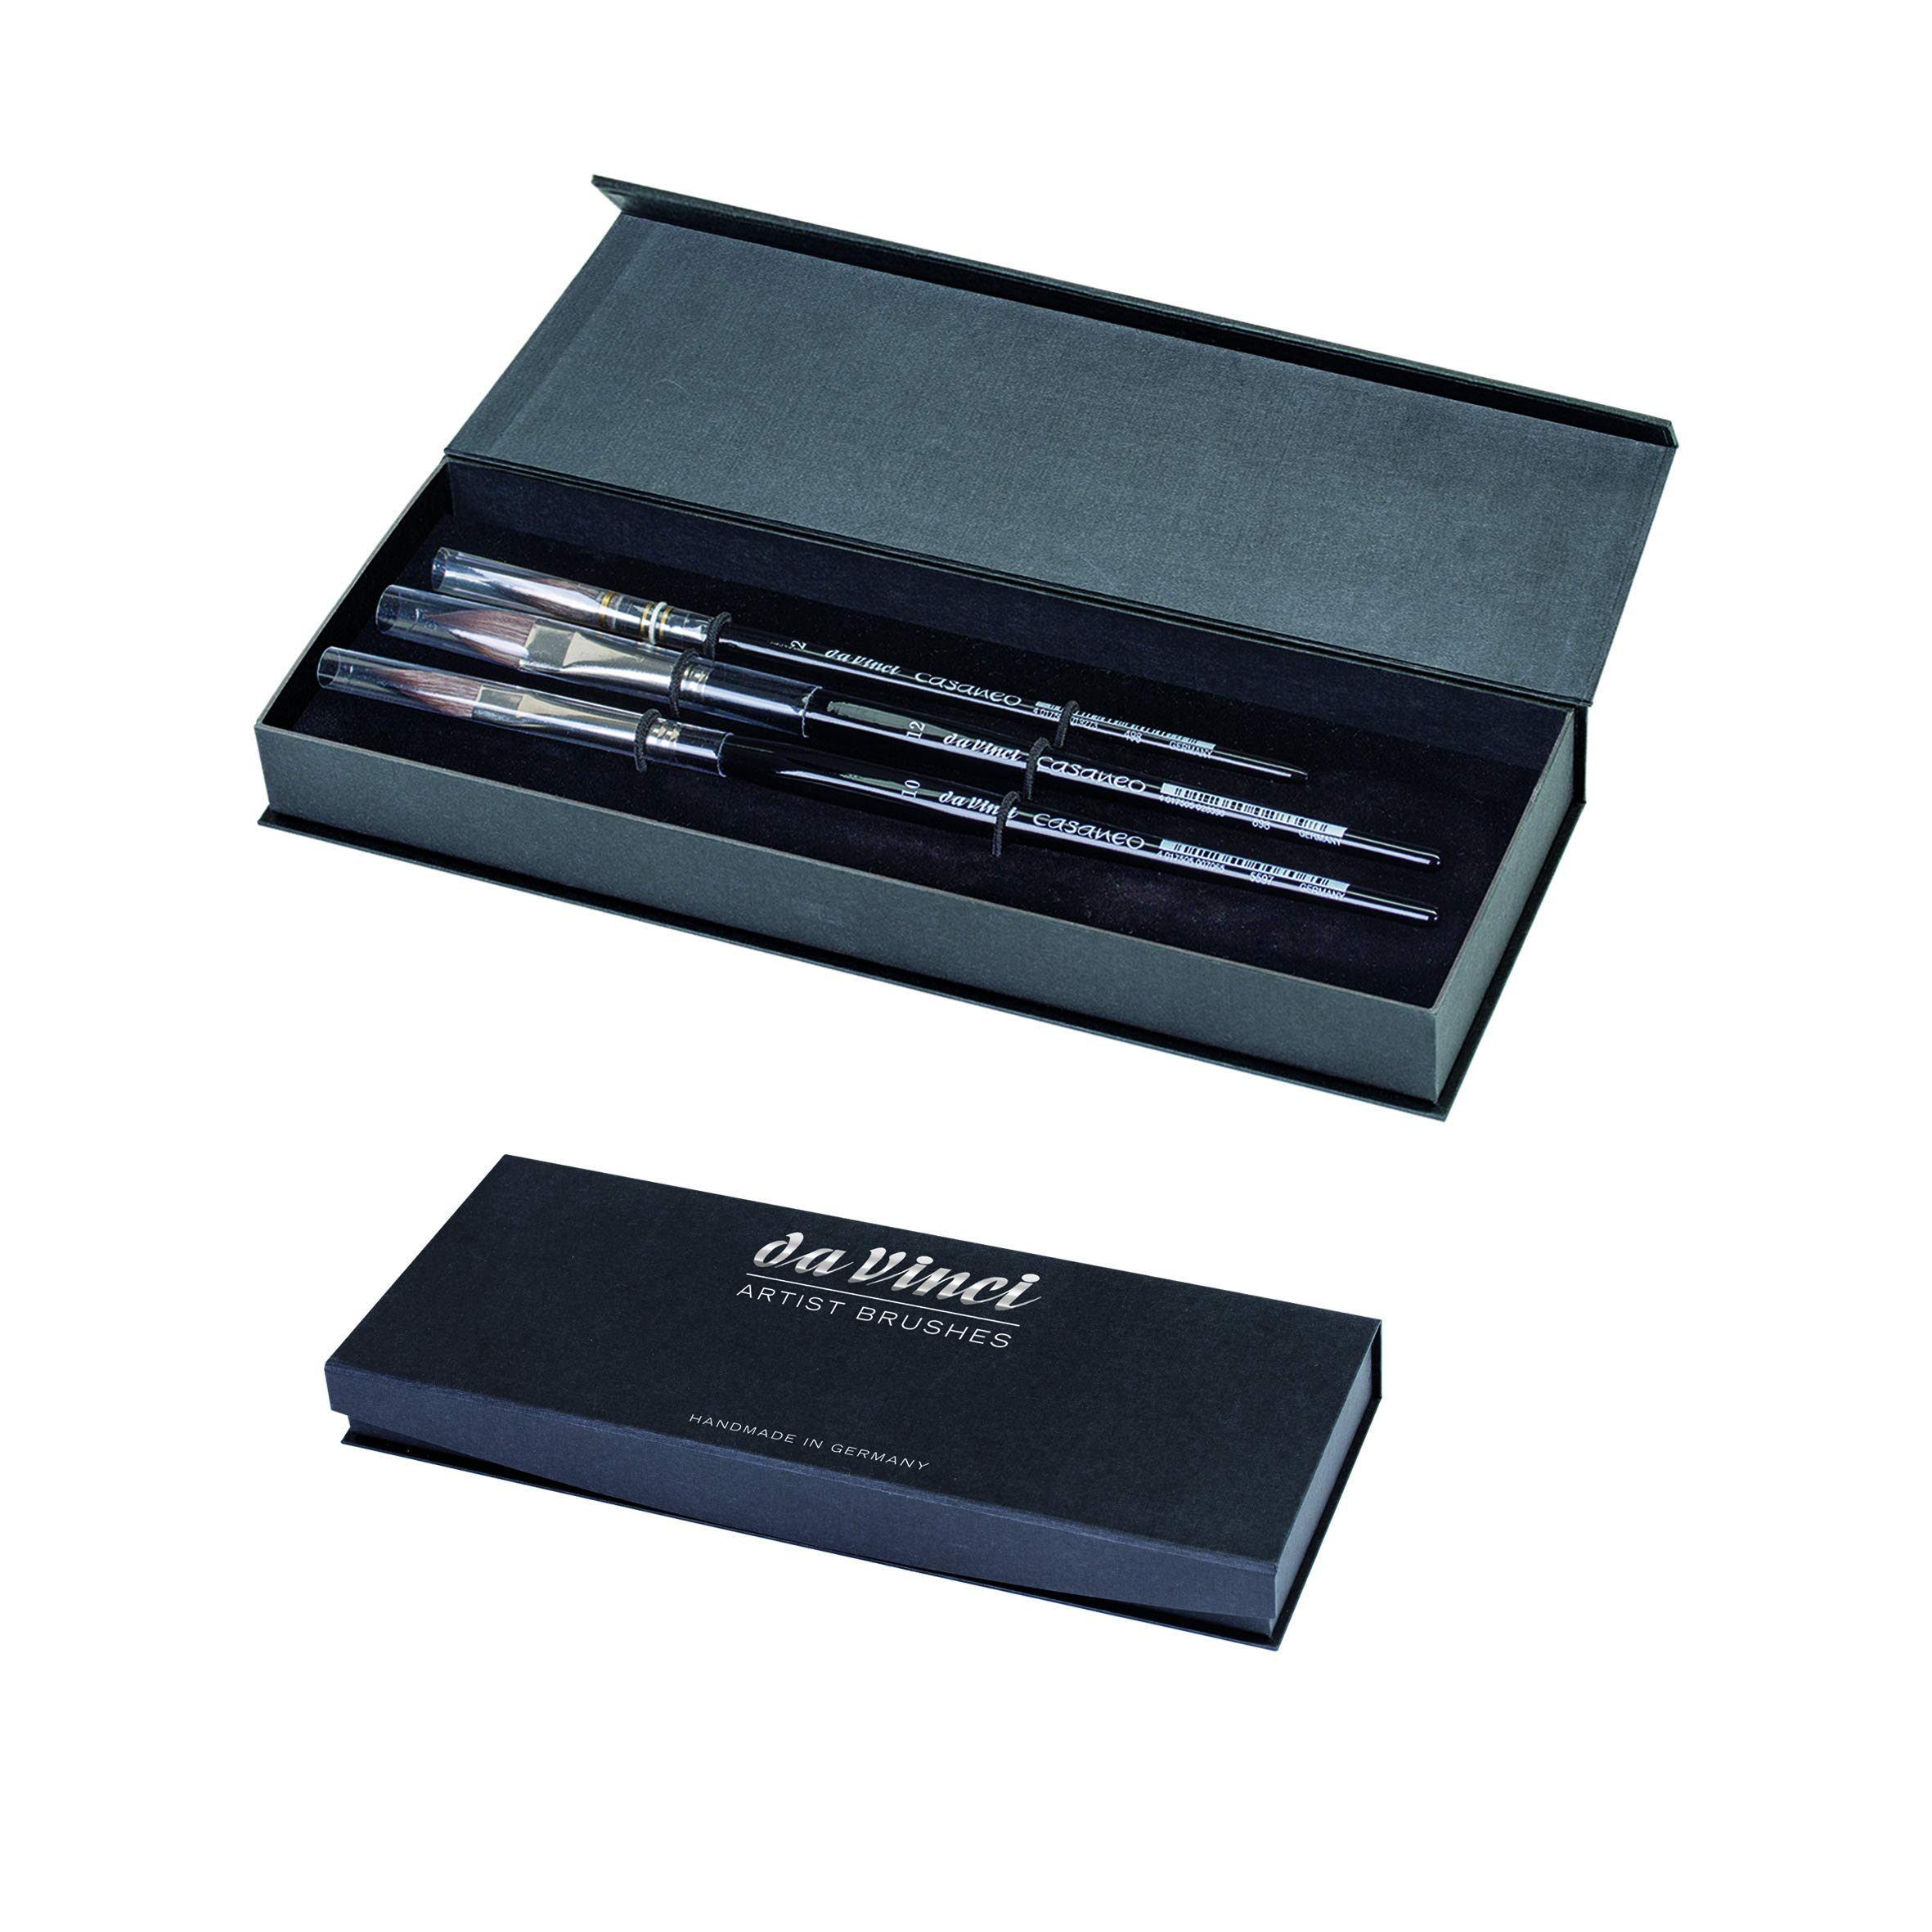 da Vinci Brushes 4250DV Watercolor Brush Set, Quill Size 2, Slant Size 10, Oval Size 12, Black 3 Each by da Vinci Brushes